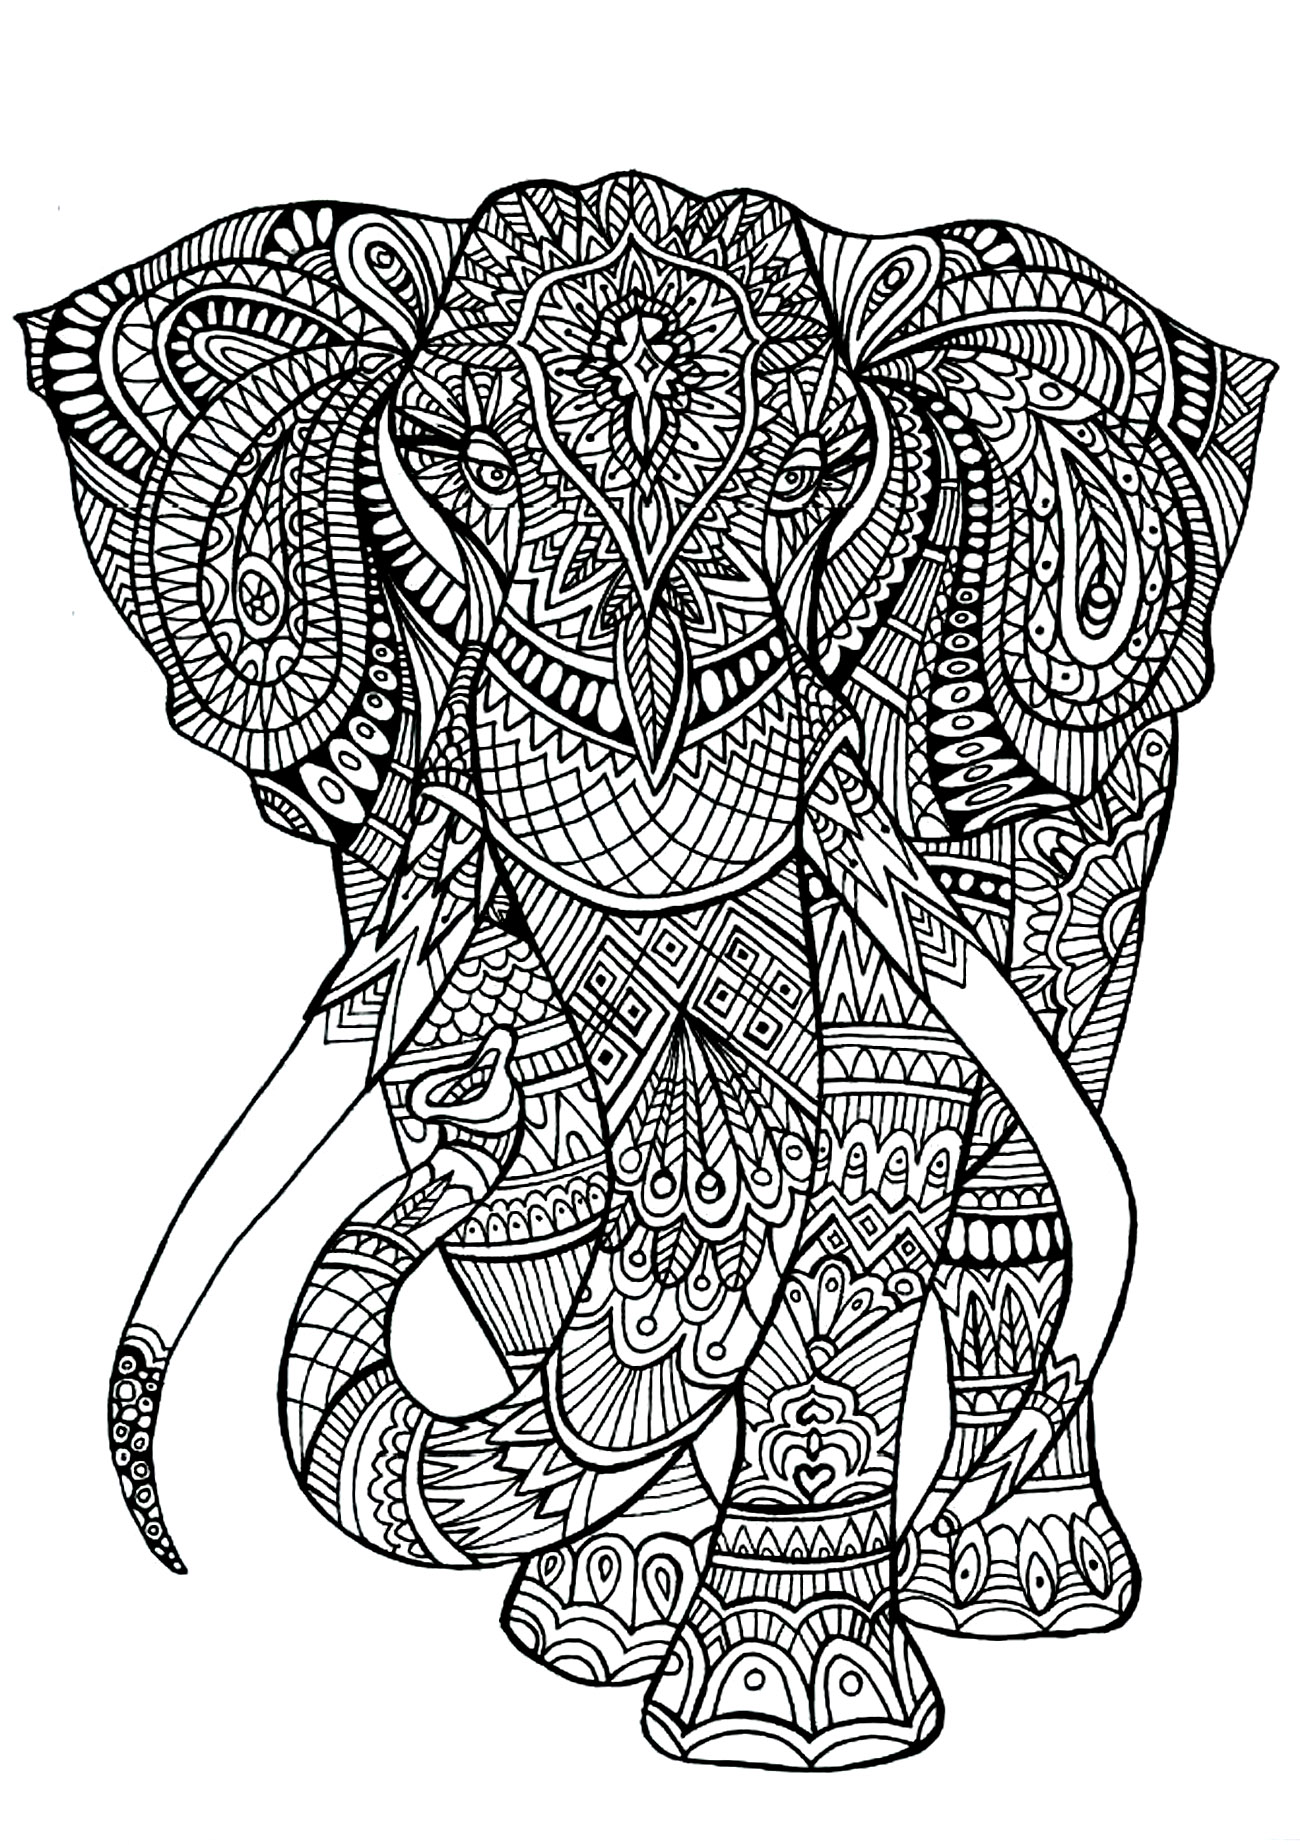 Coloring Page : Elephant Patterns. A Big Elephant Full Of Details